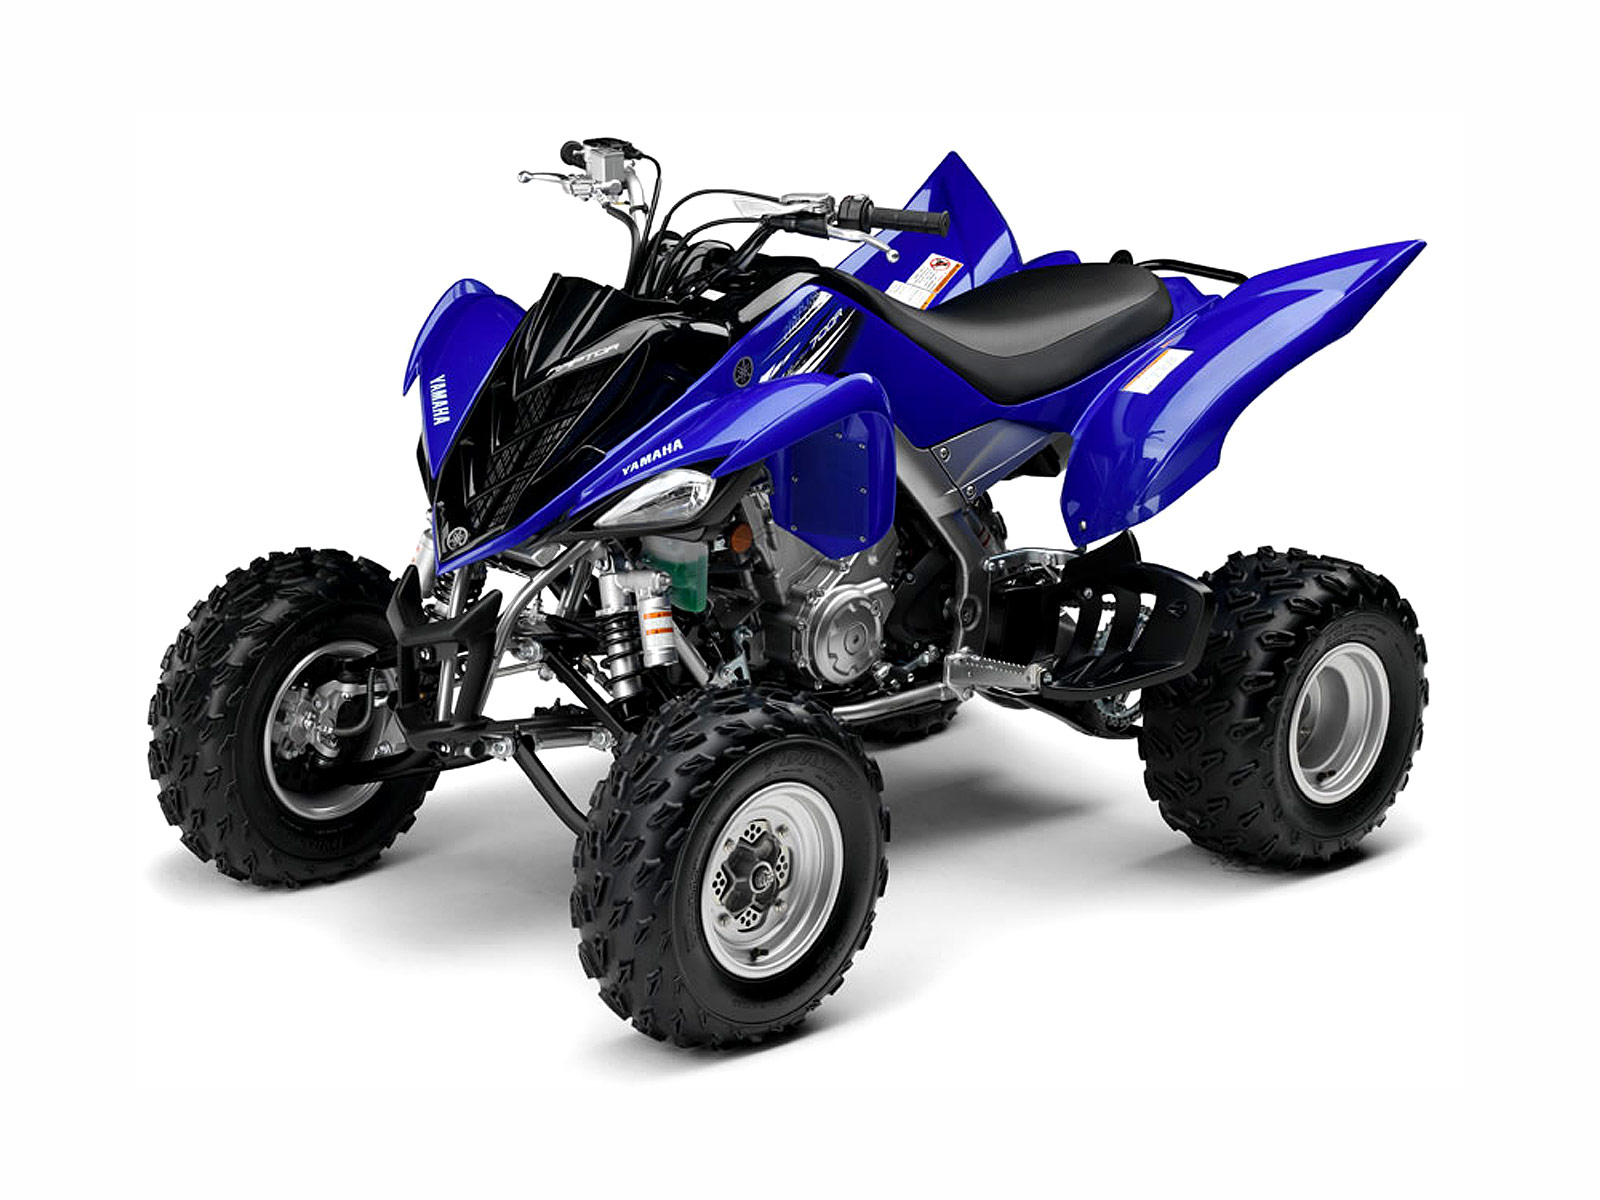 2012 yamaha raptor 700r atv pictures review specs. Black Bedroom Furniture Sets. Home Design Ideas